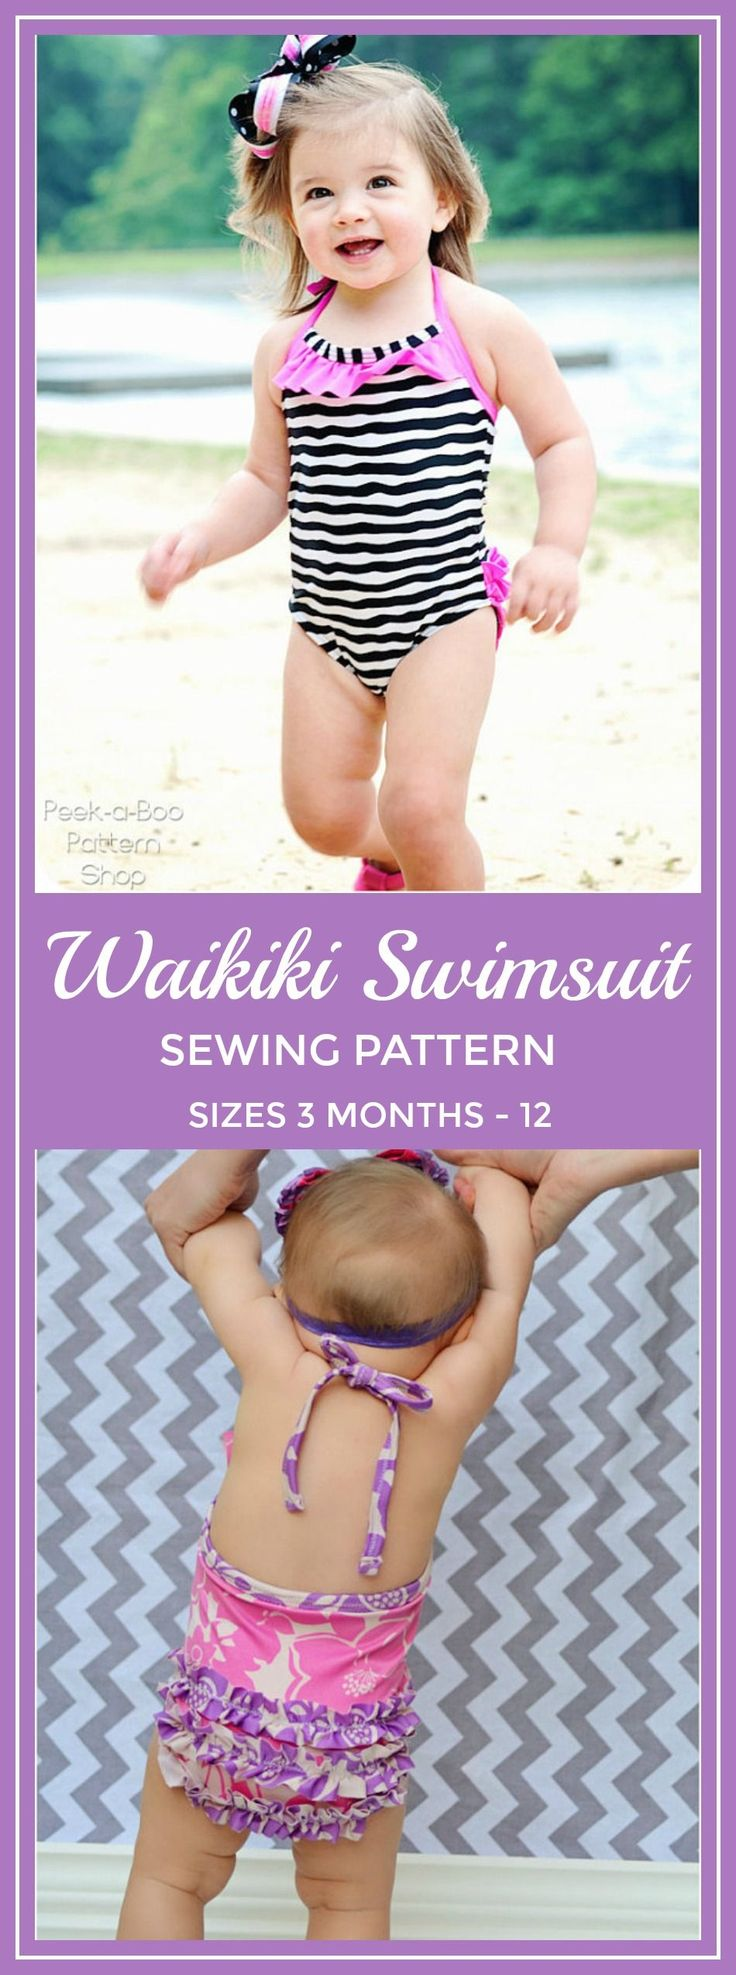 Waikiki One-Piece Swimsuit: Girls Swimsuit PDF Pattern, Baby and Toddler Swimsuit Pattern #sewing #sewingpattern #swimsuit #affiliate #swim